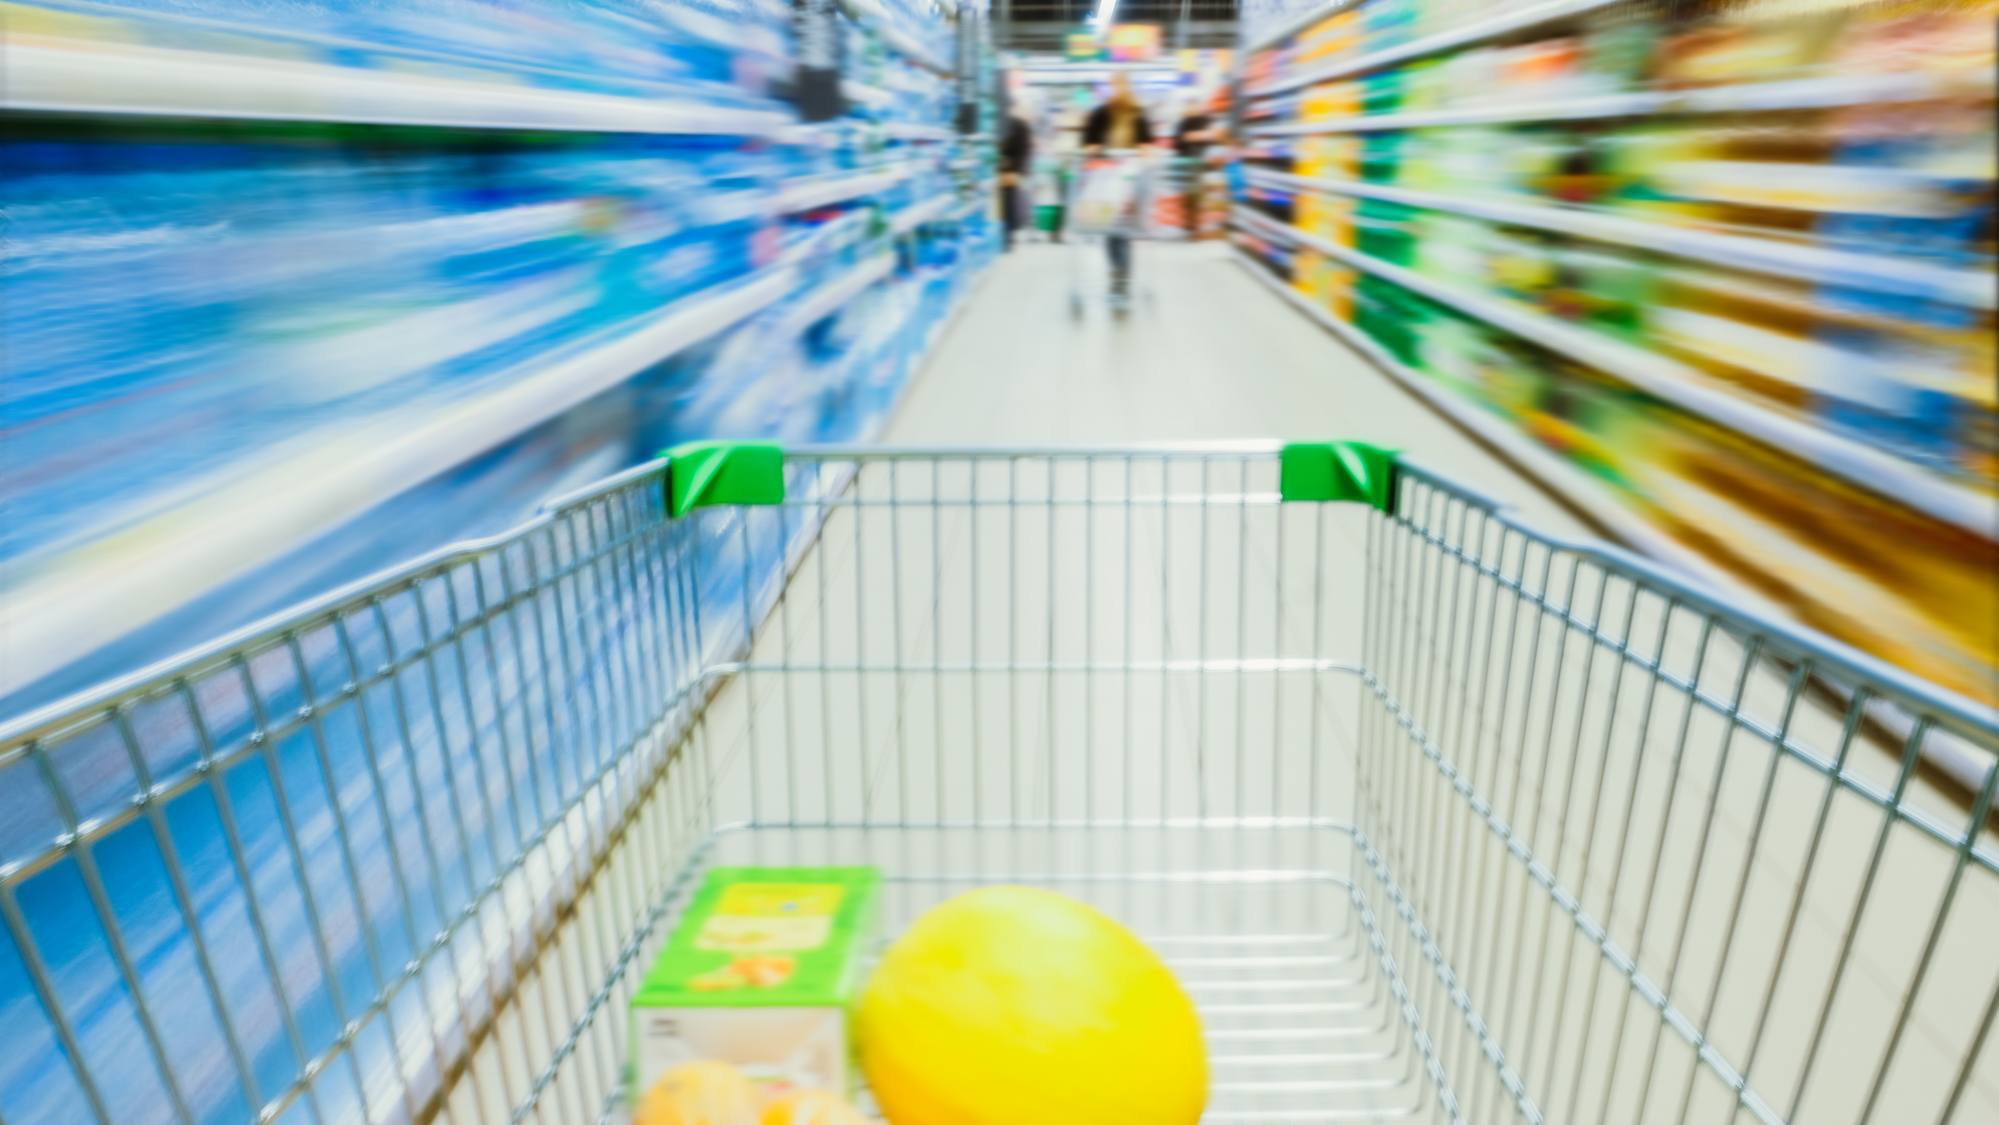 How are Consumer Packaged Goods Companies Using Big Data?